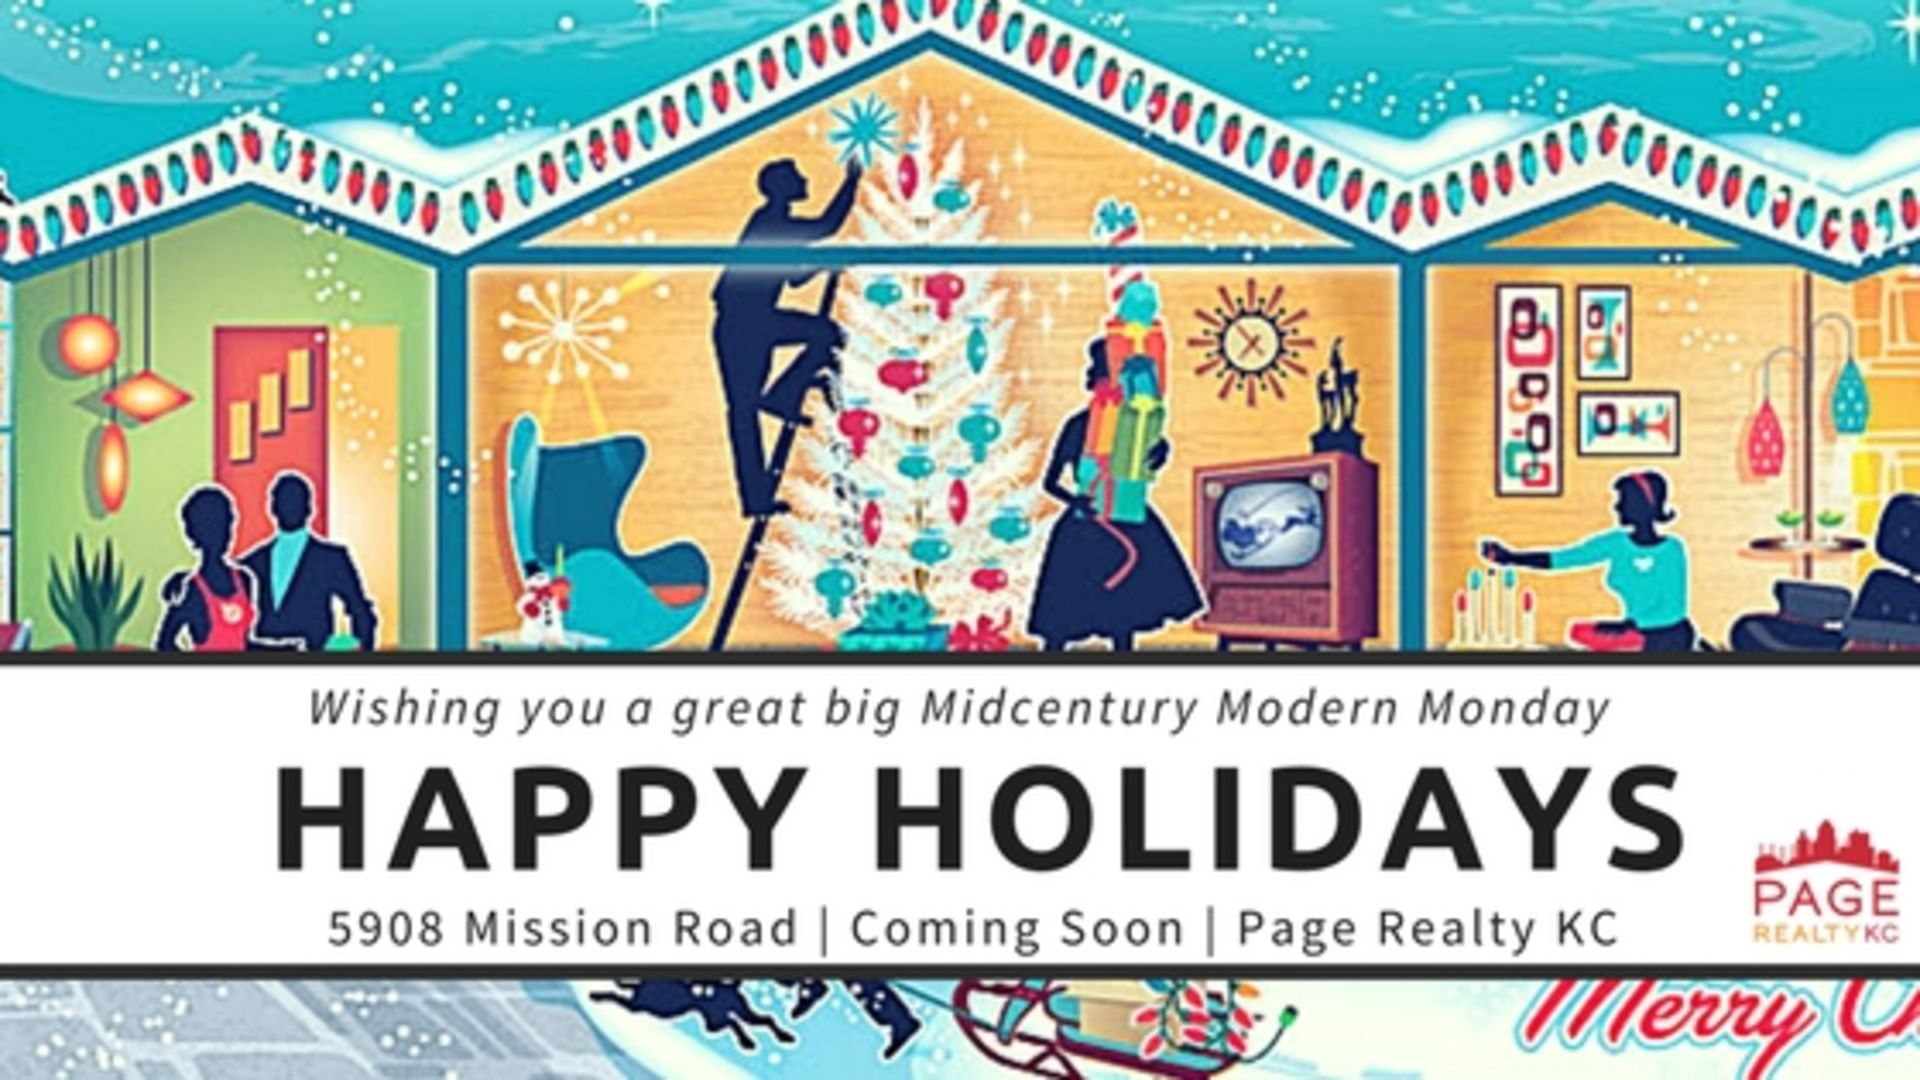 Midcentury Modern Monday (on a Tuesday) – A Happy Holidays Edition